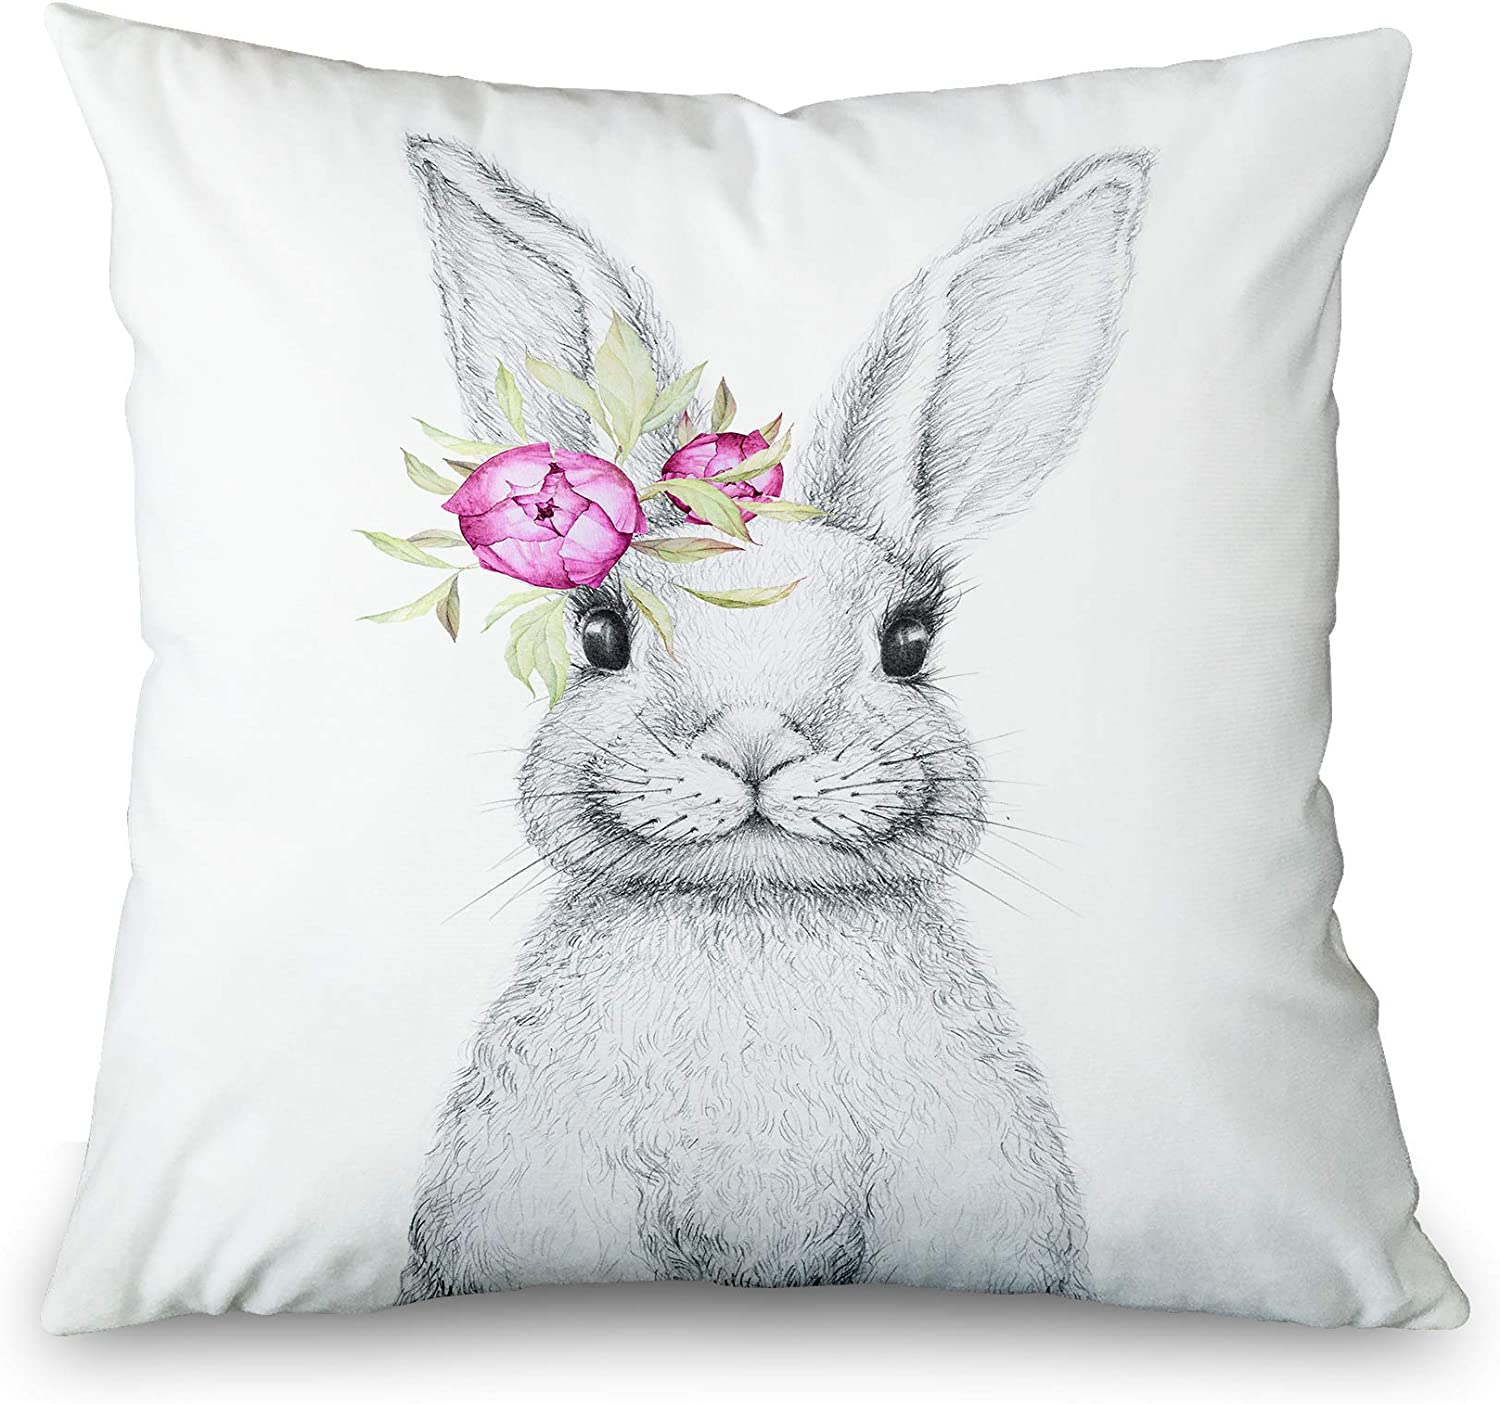 Toobaso Easter Bunny Decorations Pillow Covers 18x18 Cute Rabbit Animal Home Decor Pillowcases Easter Baby Kids Gift Throw Cushion Cover for Living Room Sofa